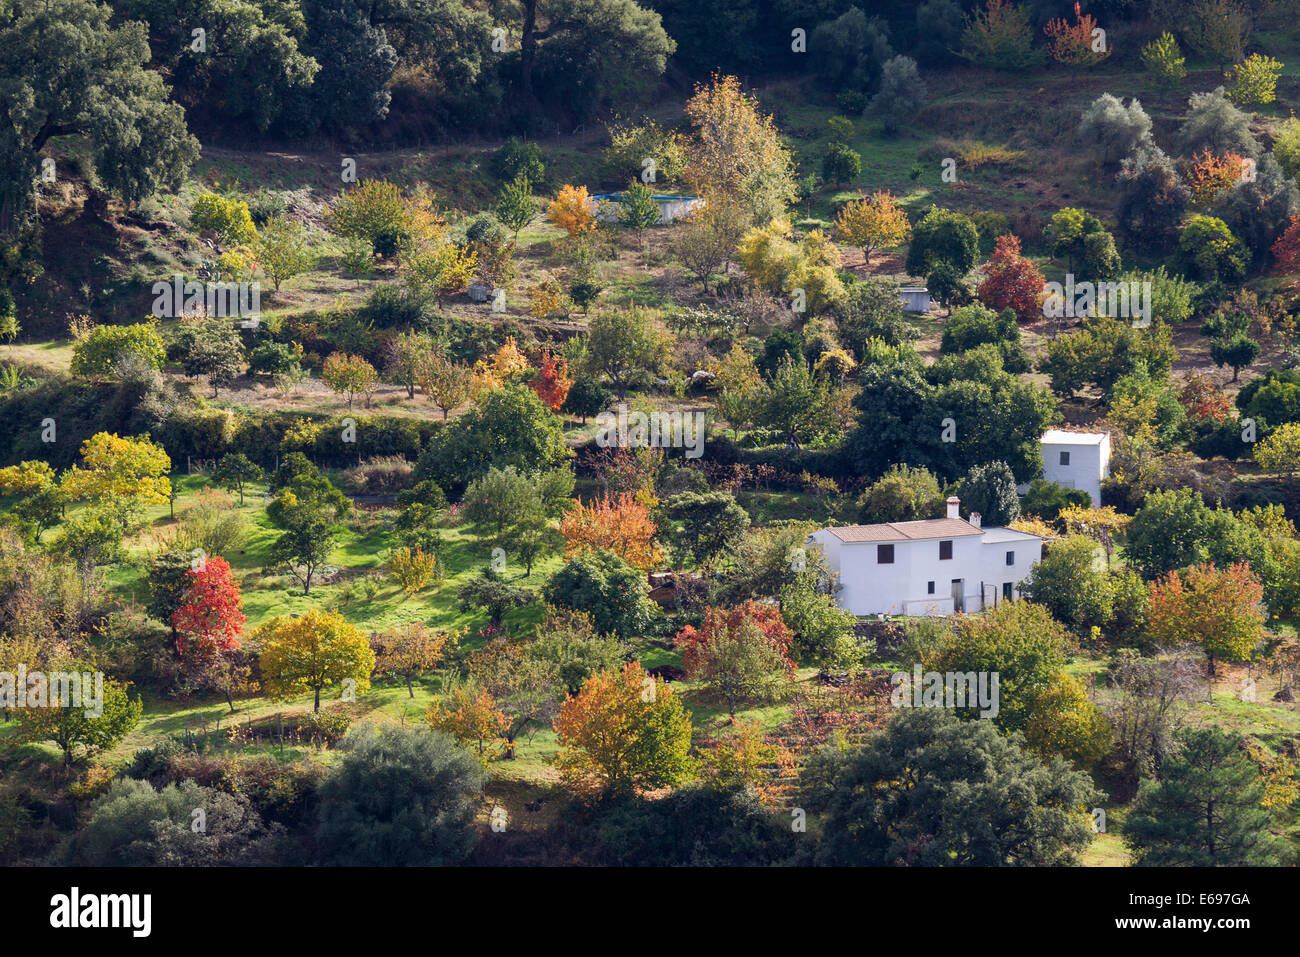 Farmhouse in a garden with different fruit trees in autumn, Genal river valley, Málaga province, Andalusia, - Stock Image